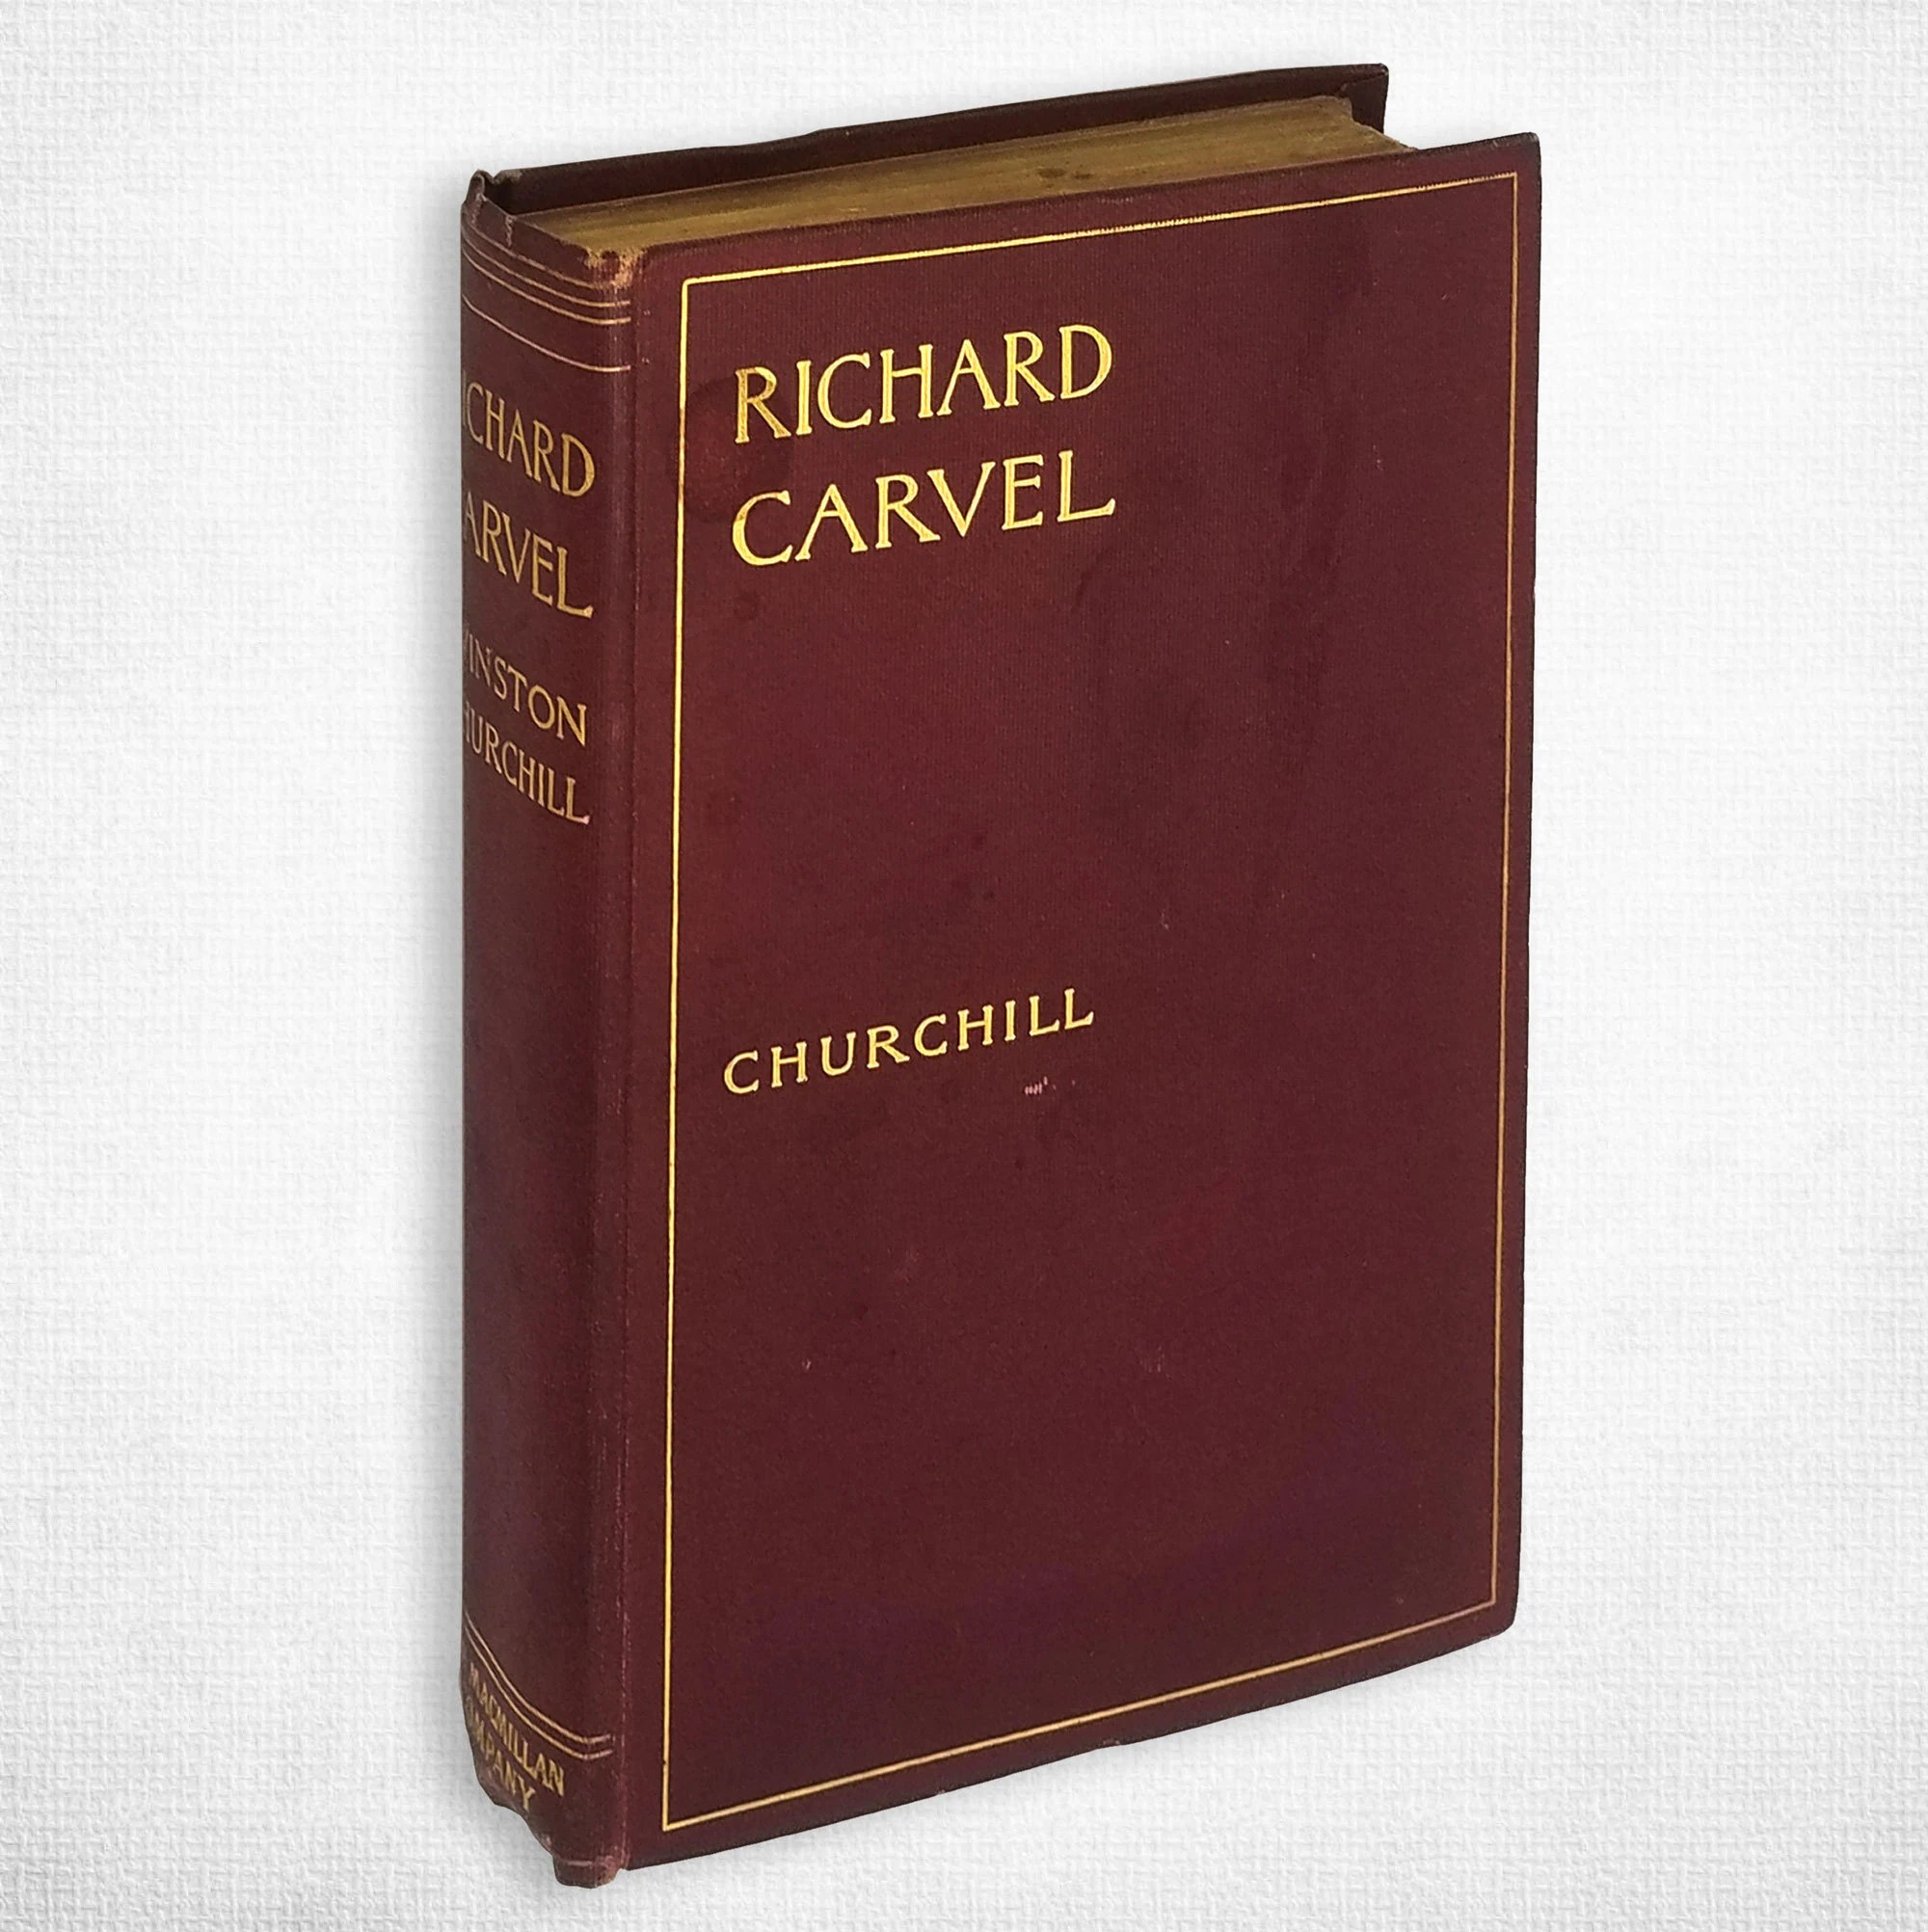 Antique Fiction Richard Carvel By Winston Churchill 2nd